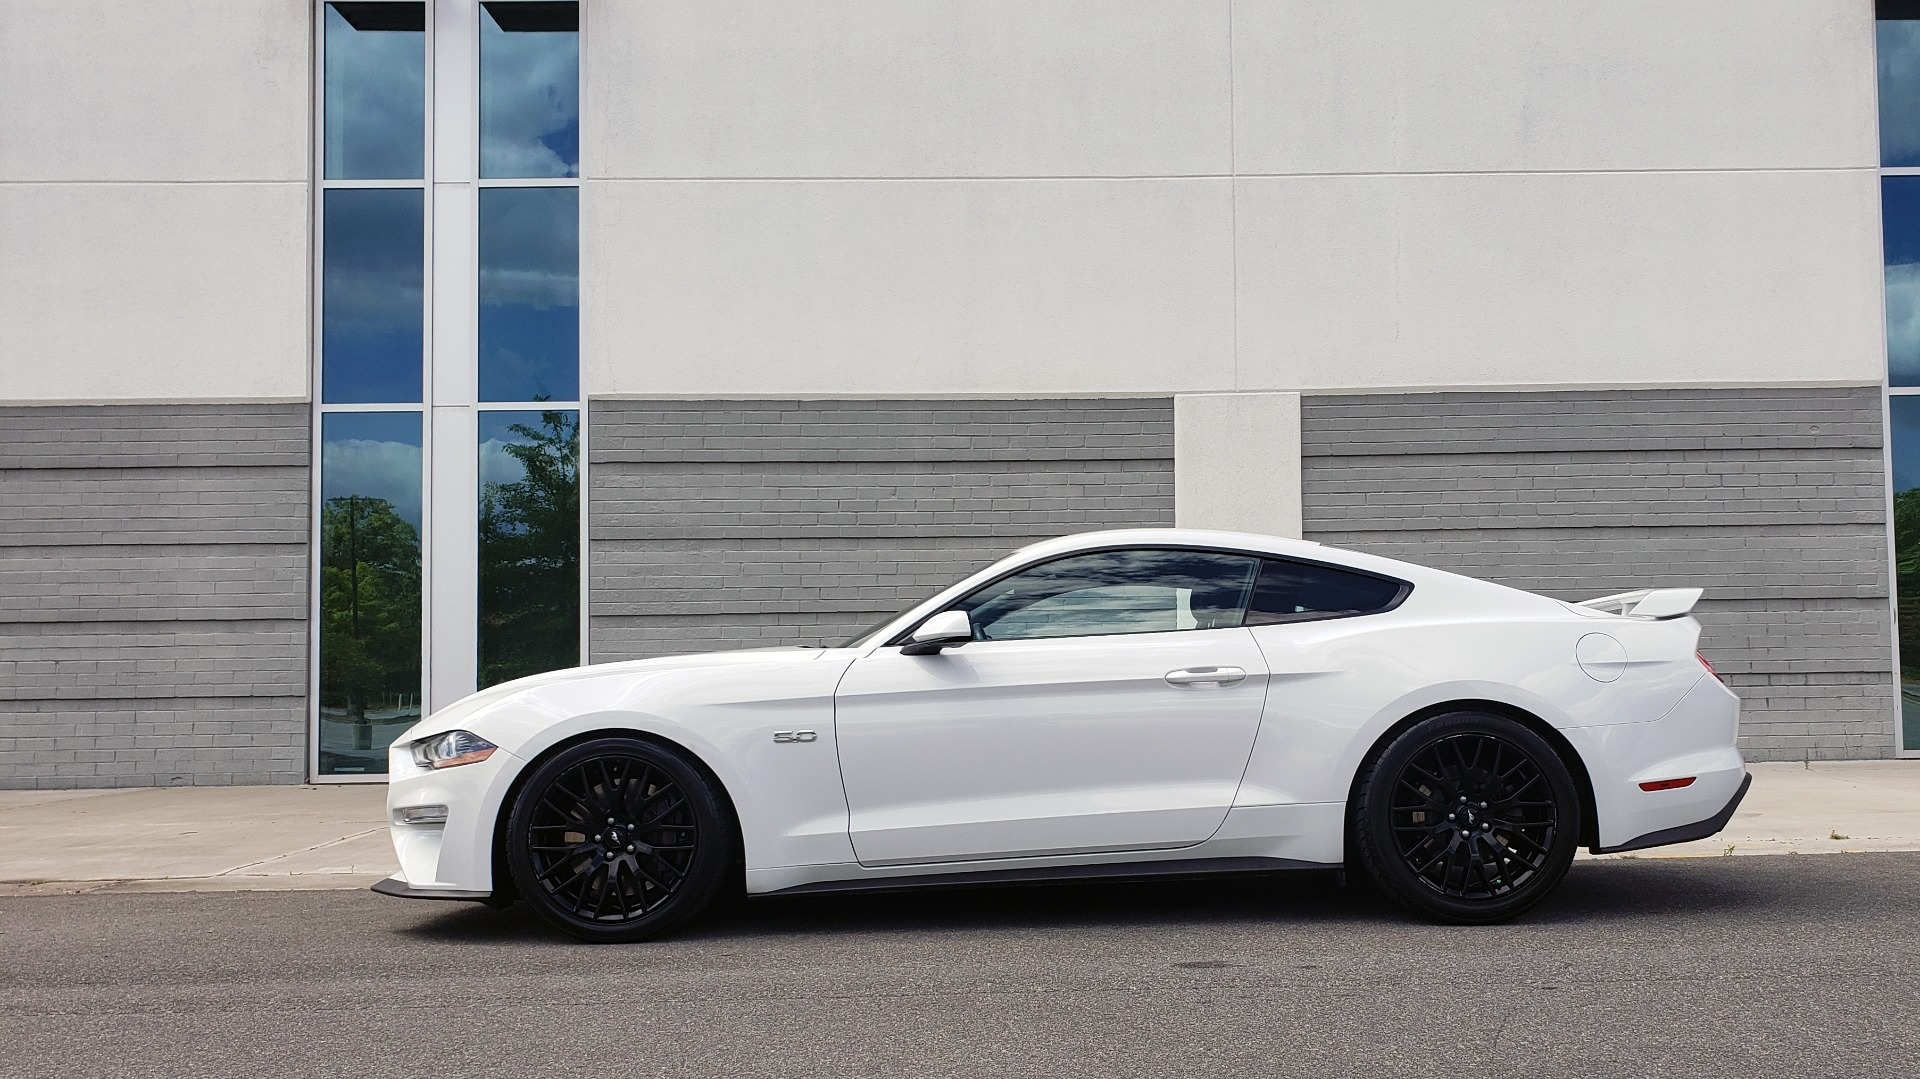 Used 2018 Ford MUSTANG GT COUPE / 5.0L V8 / AUTO / PERF PKG / REARVIEW / 19IN WHLS for sale Sold at Formula Imports in Charlotte NC 28227 7